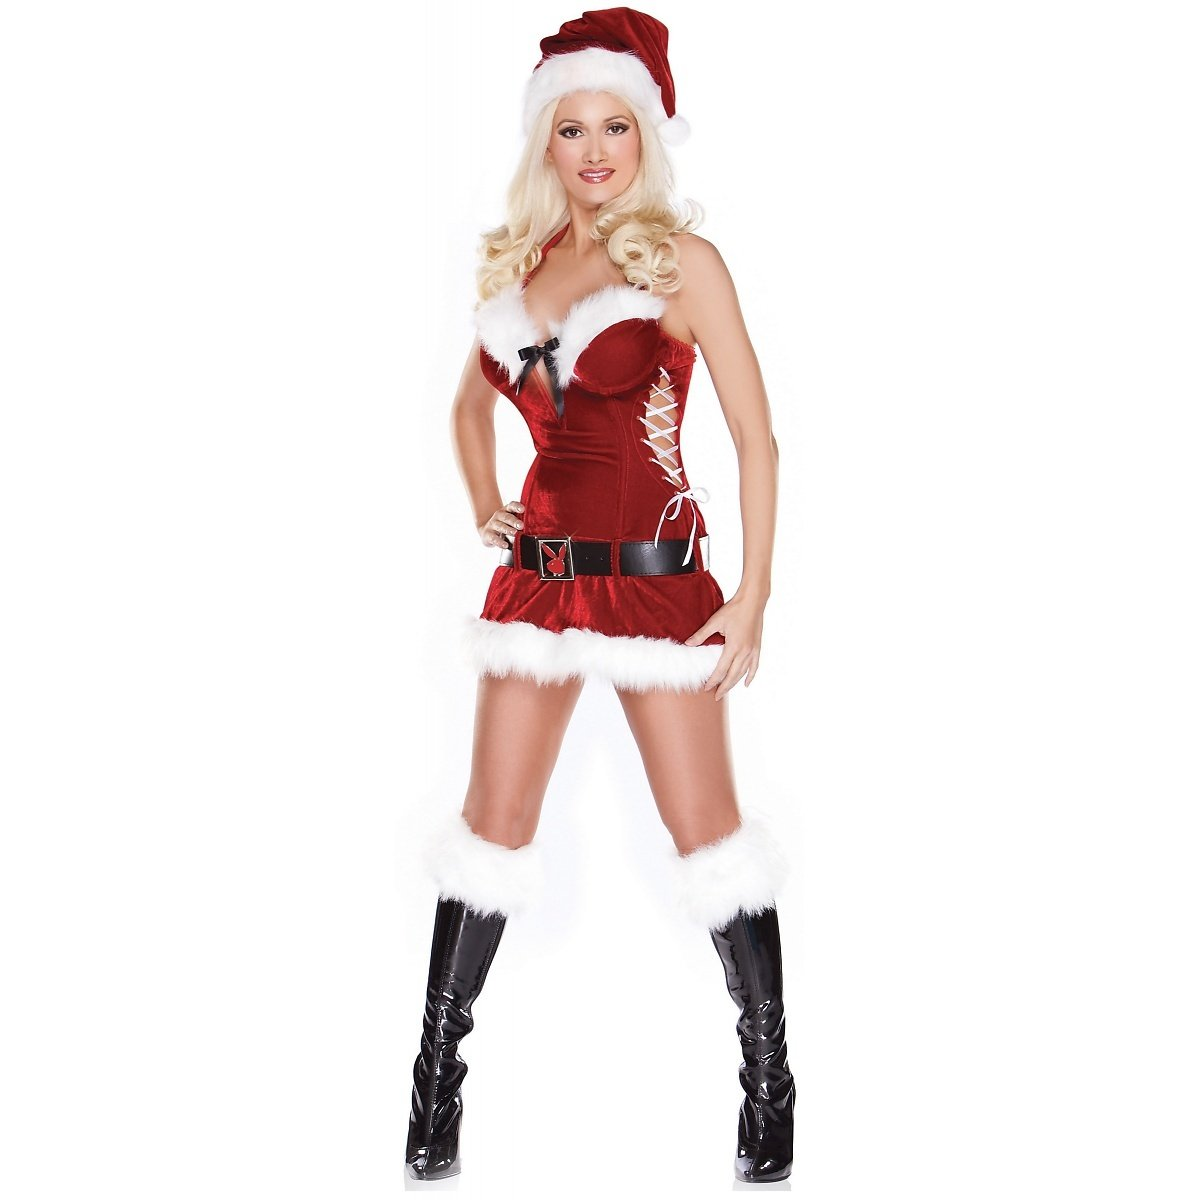 1ce54f70f5e Amazon.com  Fun World Easter Unlimited Playboy Holiday Honey Adult Costume  2-4  Adult Exotic Costumes  Clothing